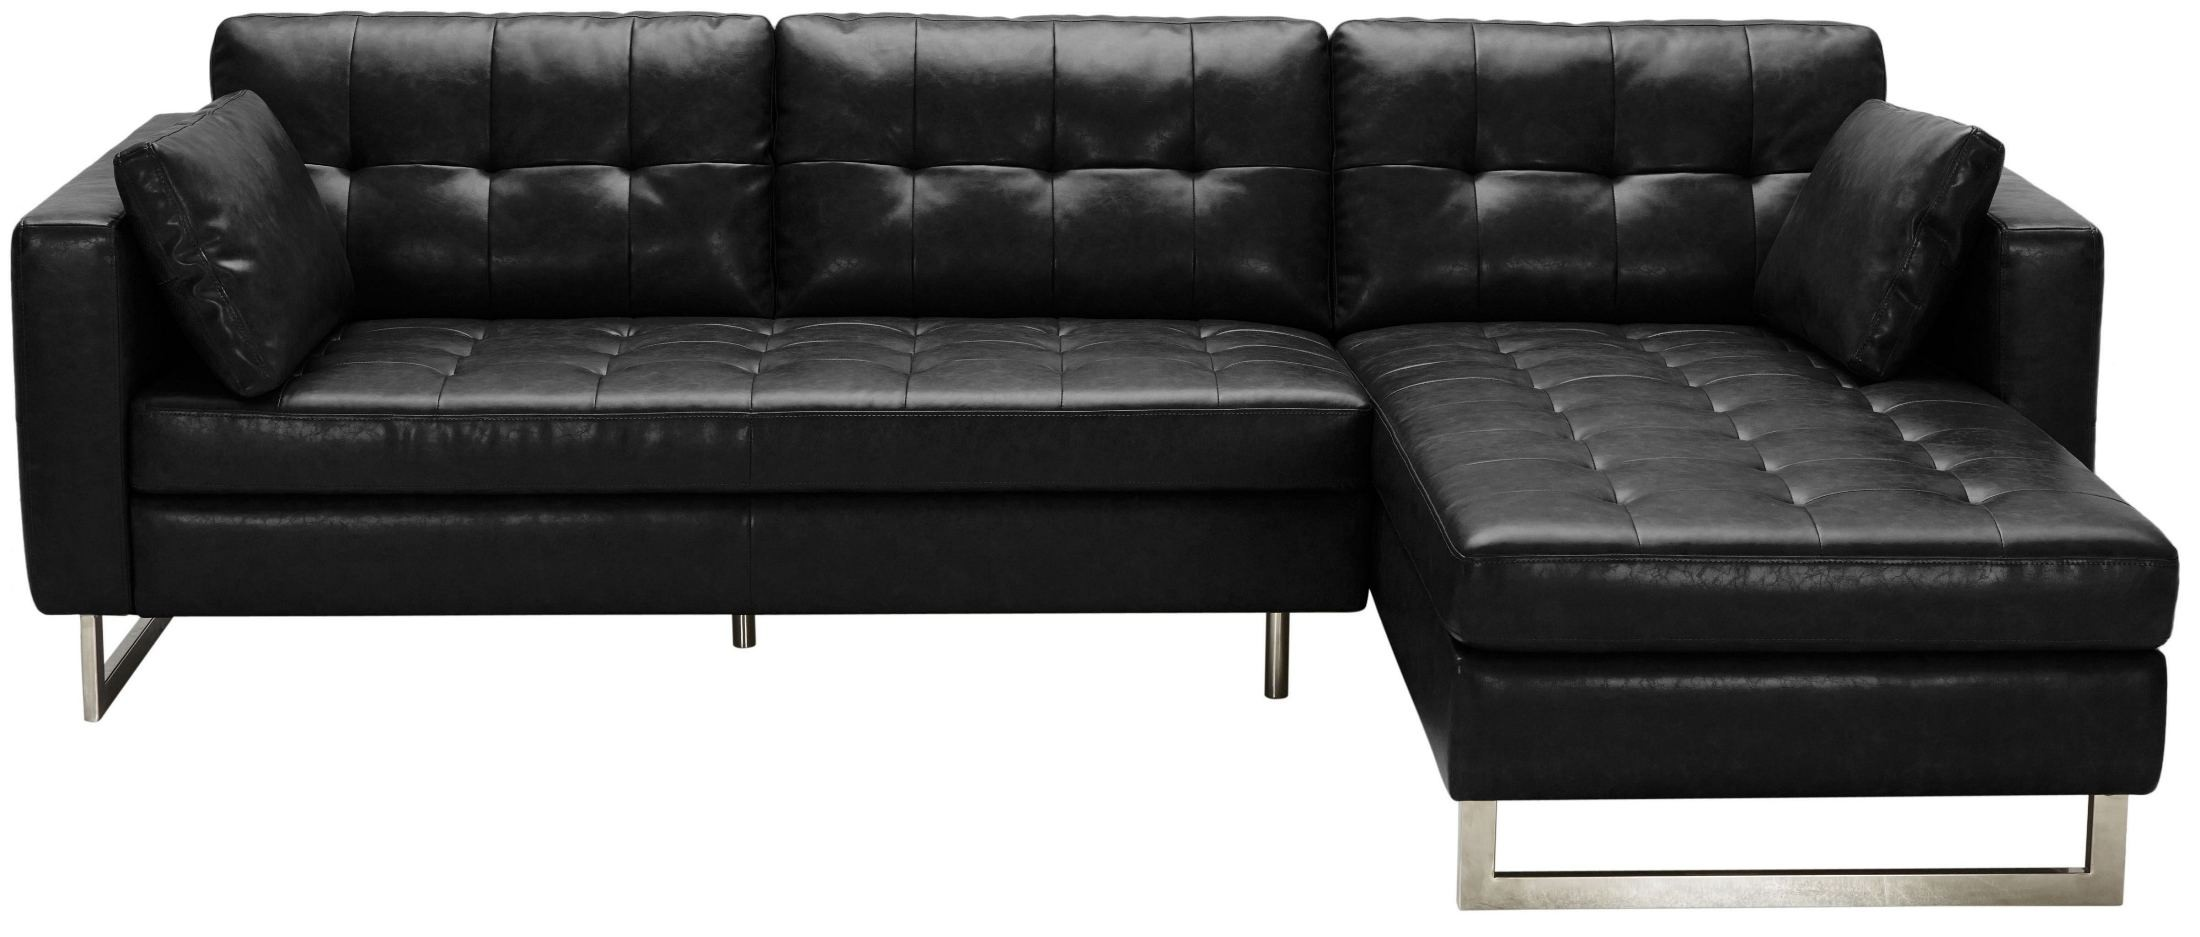 Wilson black fog leather sofa chaise 100833 sunpan for Black leather sectional sofa with chaise